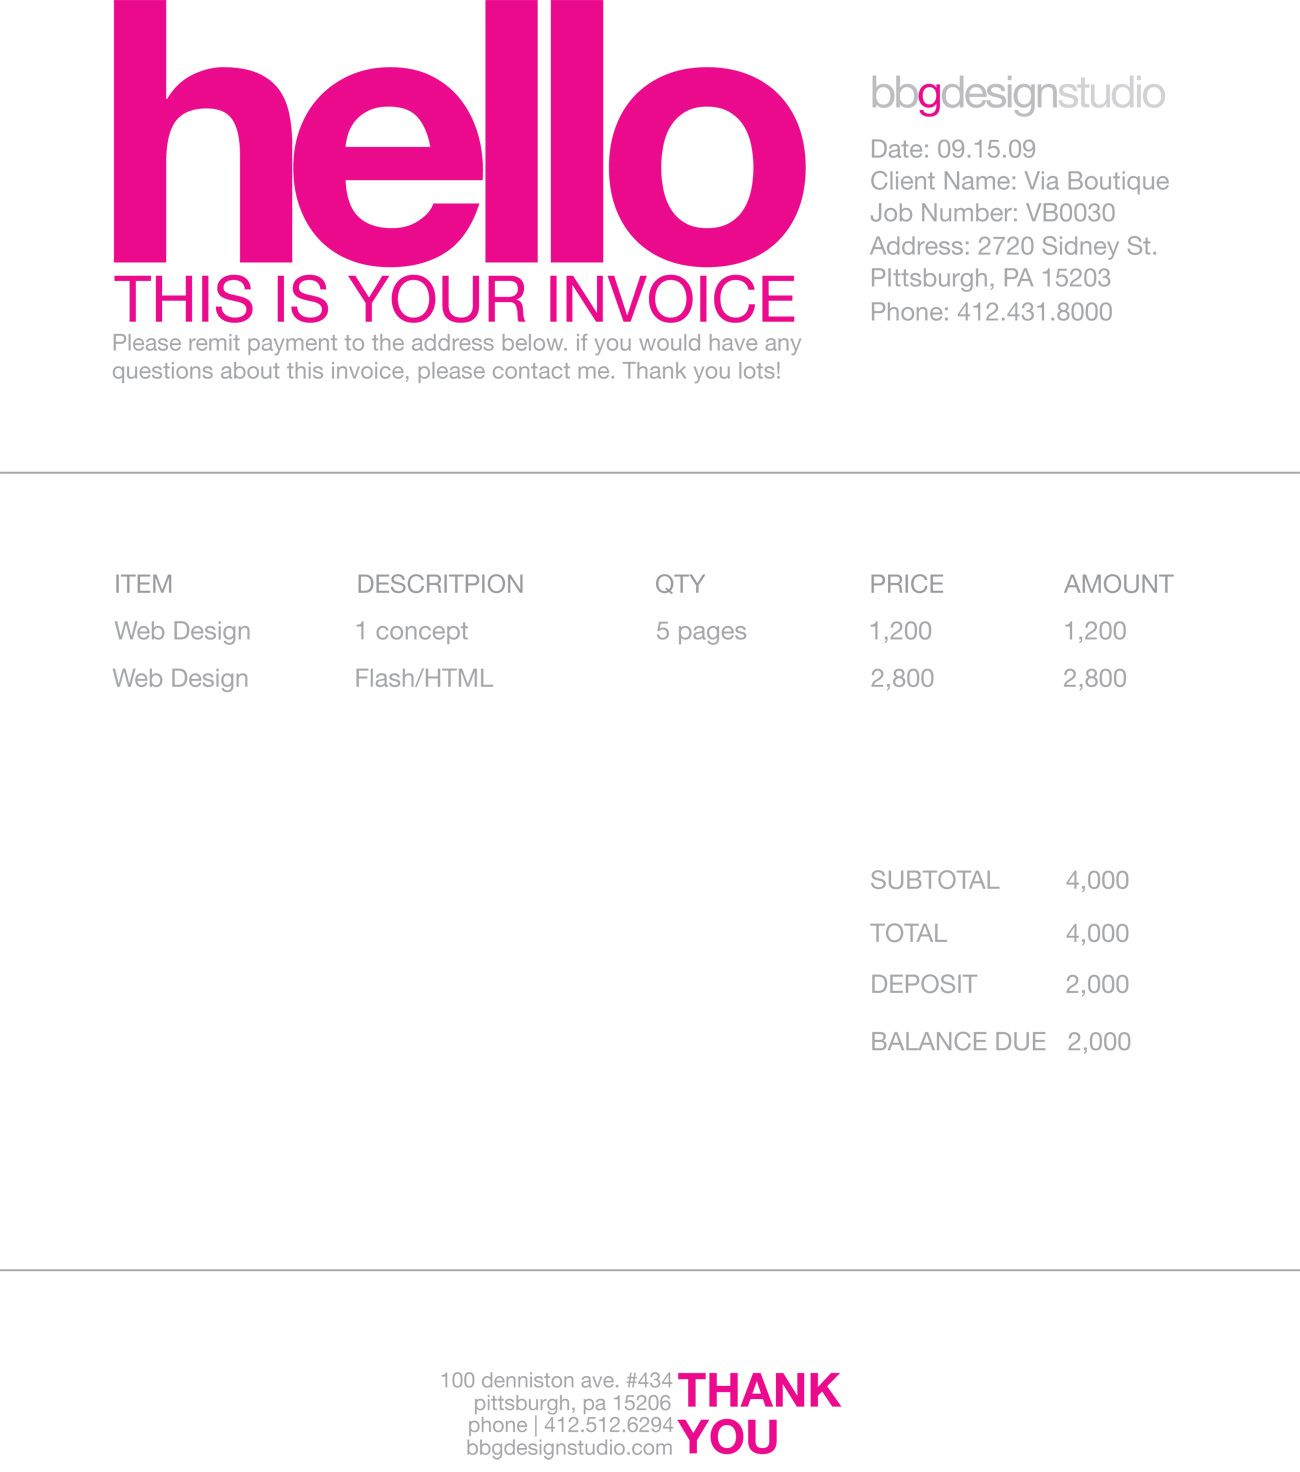 Maidofhonortoastus  Terrific  Images About Invoice Design On Pinterest With Remarkable Reminder Letter For An Outstanding Invoice Payment Besides On The Invoice Or In The Invoice Furthermore Sample Consulting Invoice Word With Cool How To Find Dealer Invoice On New Cars Also Vat On Proforma Invoices In Addition Invoice Sample Doc And How To Invoice A Company For Freelance Work As Well As Quickbooks Export Invoice Template Additionally Software Development Invoice From Pinterestcom With Maidofhonortoastus  Remarkable  Images About Invoice Design On Pinterest With Cool Reminder Letter For An Outstanding Invoice Payment Besides On The Invoice Or In The Invoice Furthermore Sample Consulting Invoice Word And Terrific How To Find Dealer Invoice On New Cars Also Vat On Proforma Invoices In Addition Invoice Sample Doc From Pinterestcom